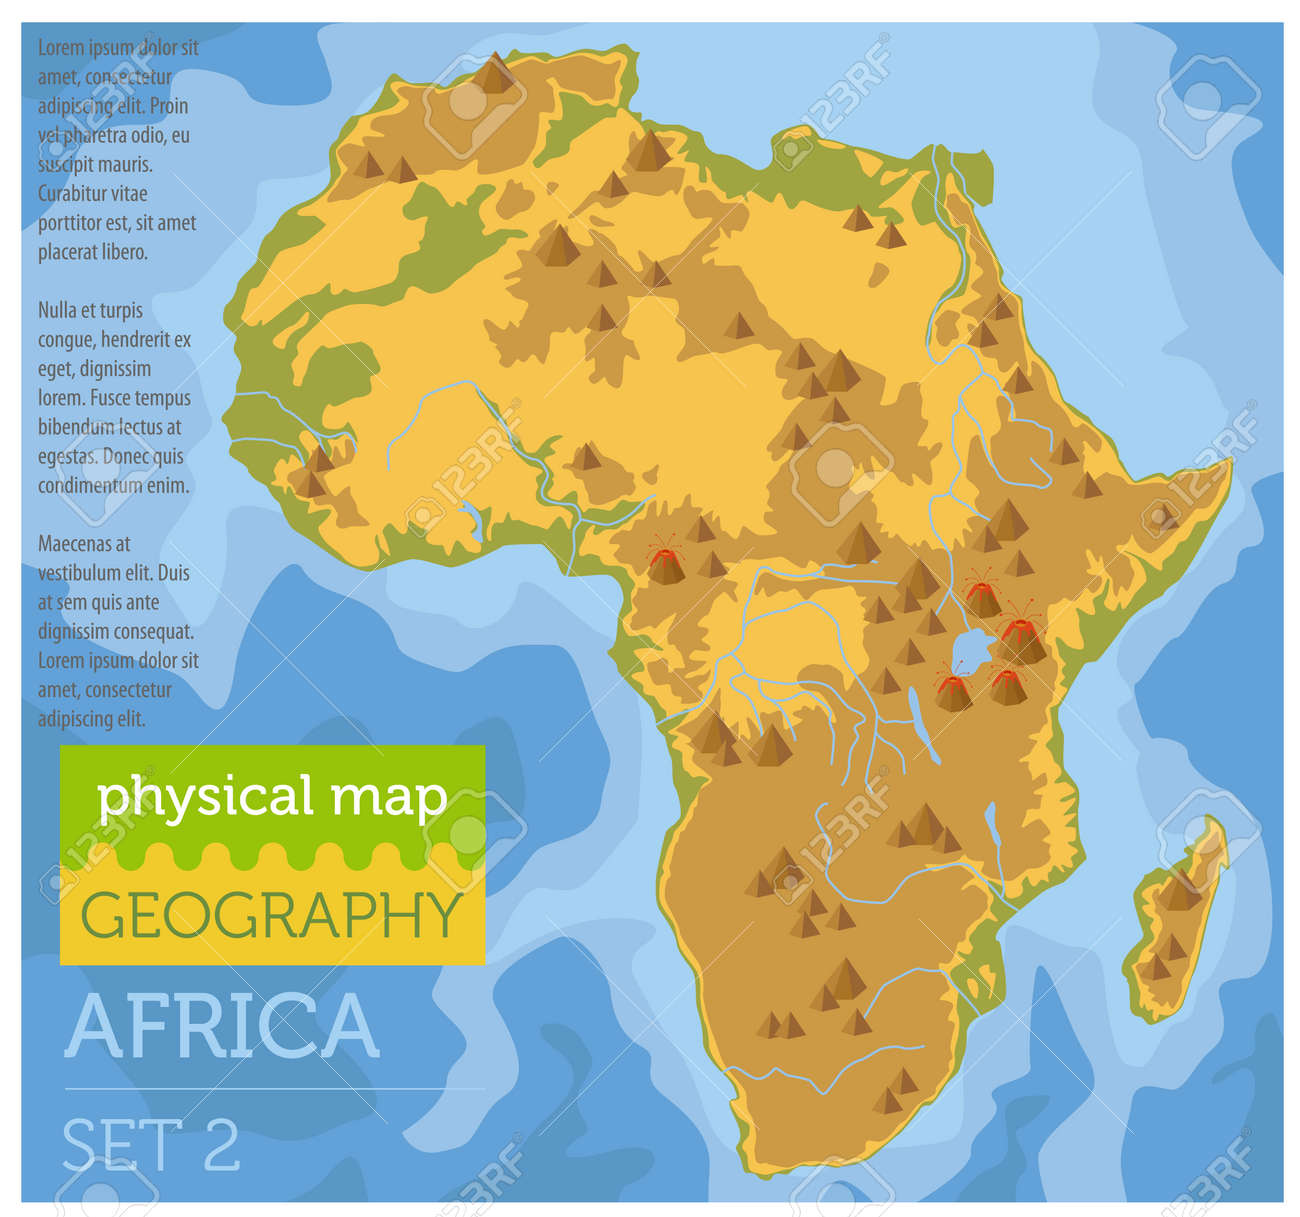 Africa Map Geography.Flat Africa Physical Map Constructor Elements On The Water Surface